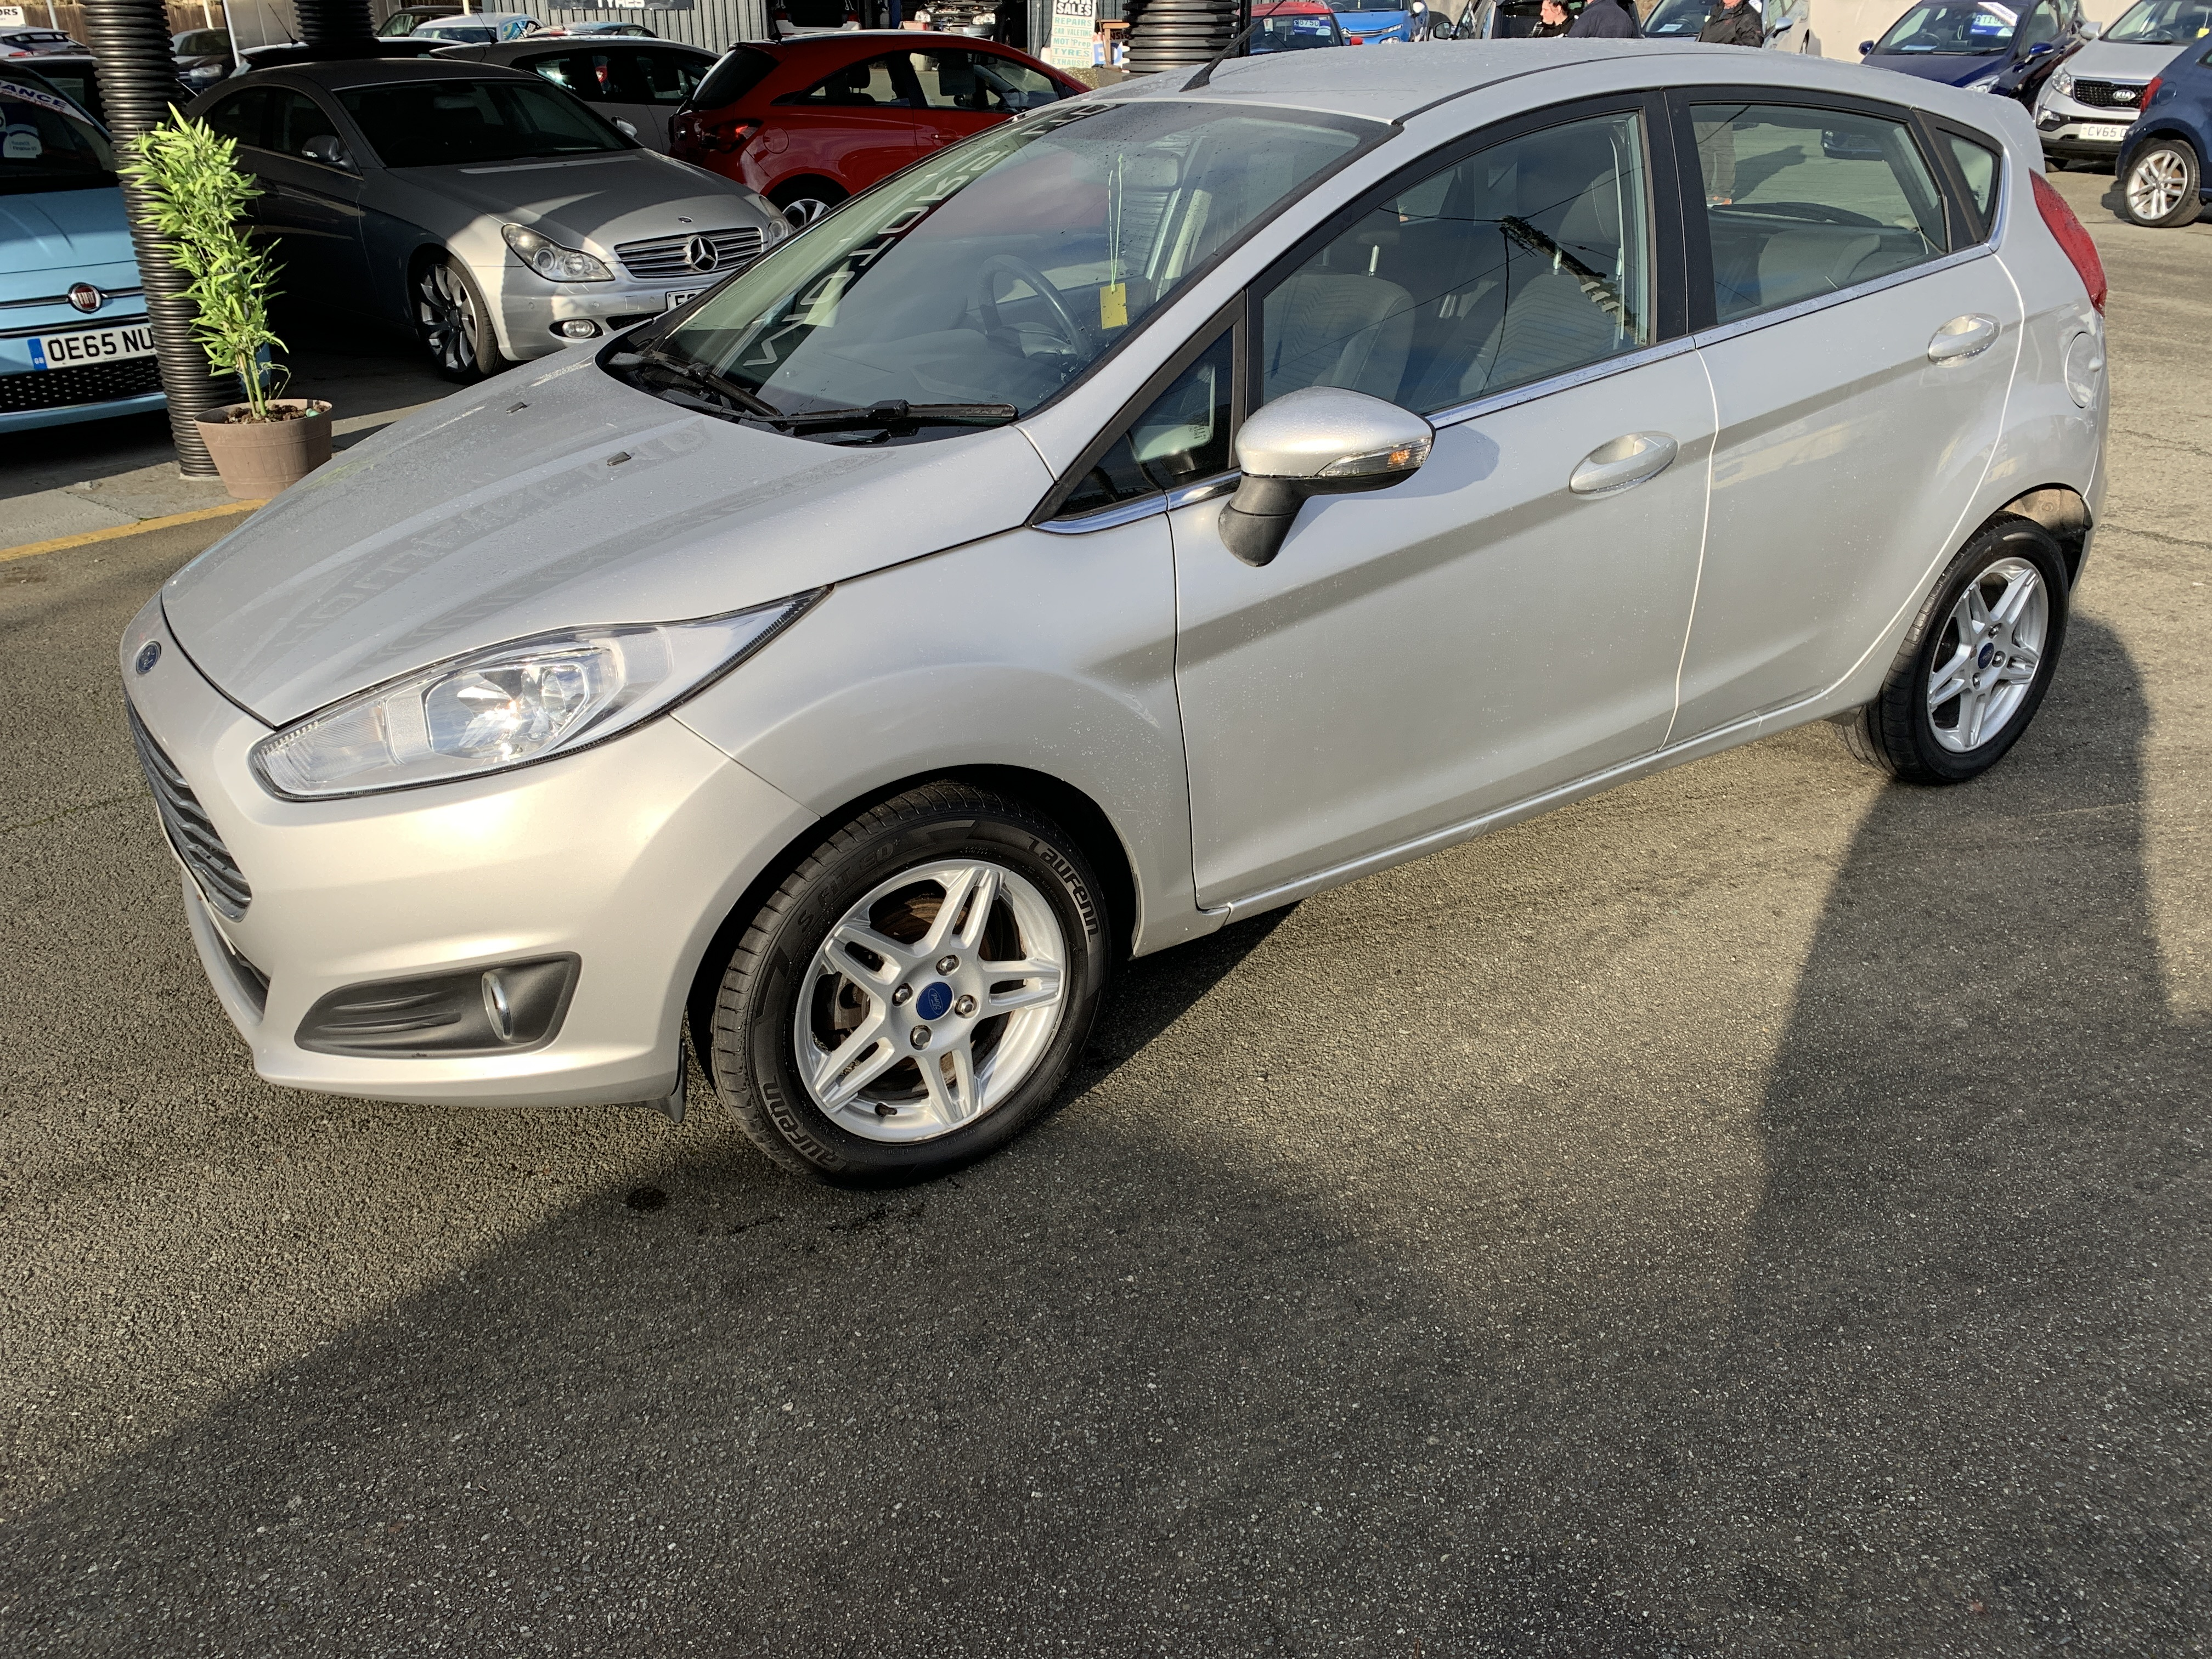 Ford FIESTA ZETEC  for sale at Mike Howlin Motor Sales Pembrokeshire